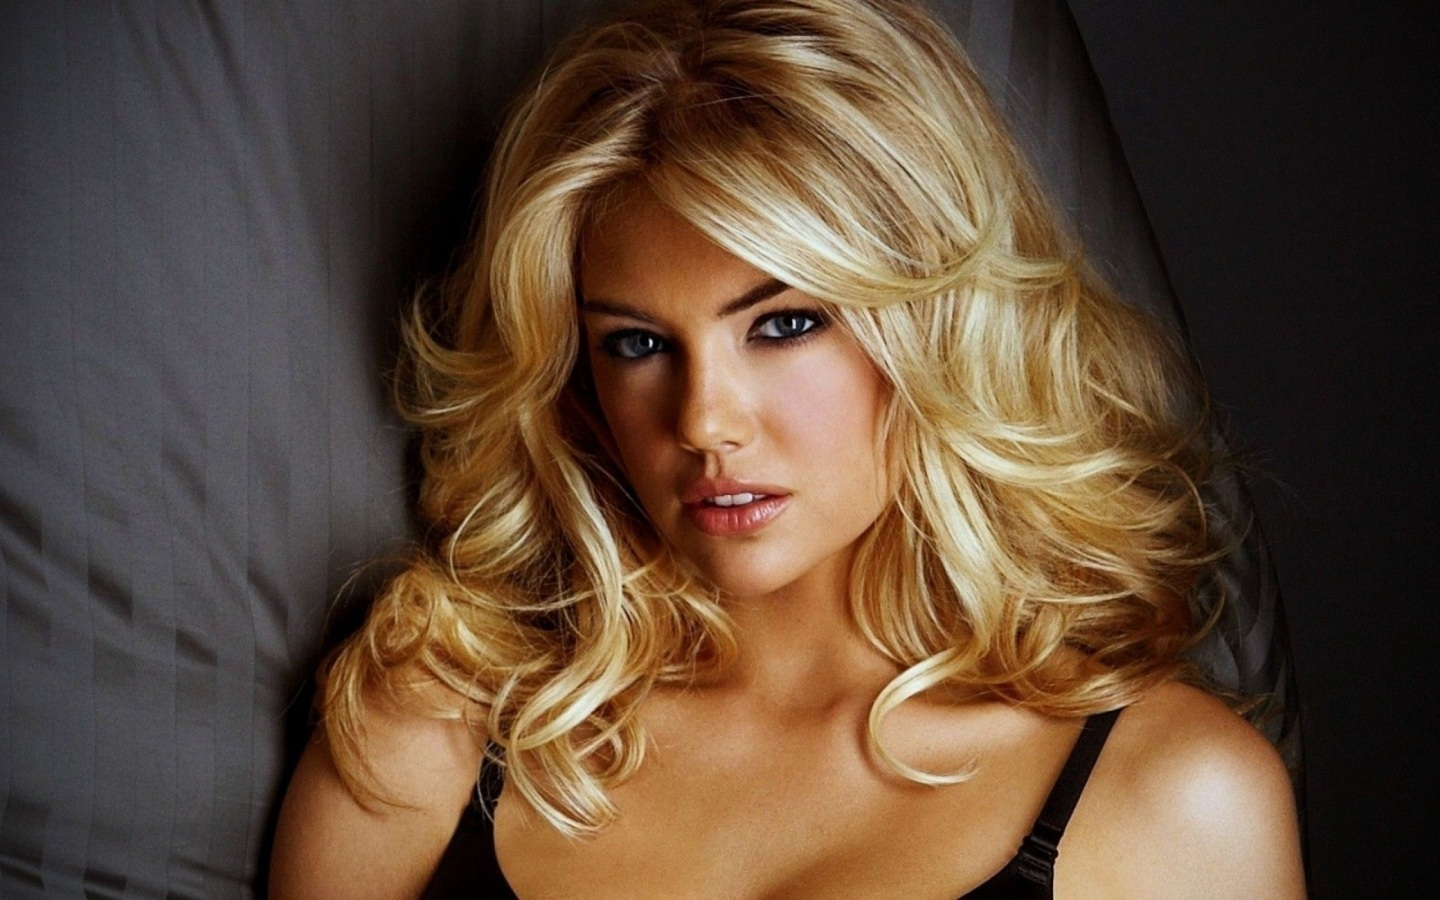 Wall hit kate upton feet wallpapers free download kate upton feet wallpapers for super definition and dual monitors you can download your desired wallpaper very easily from wallhitspot altavistaventures Choice Image